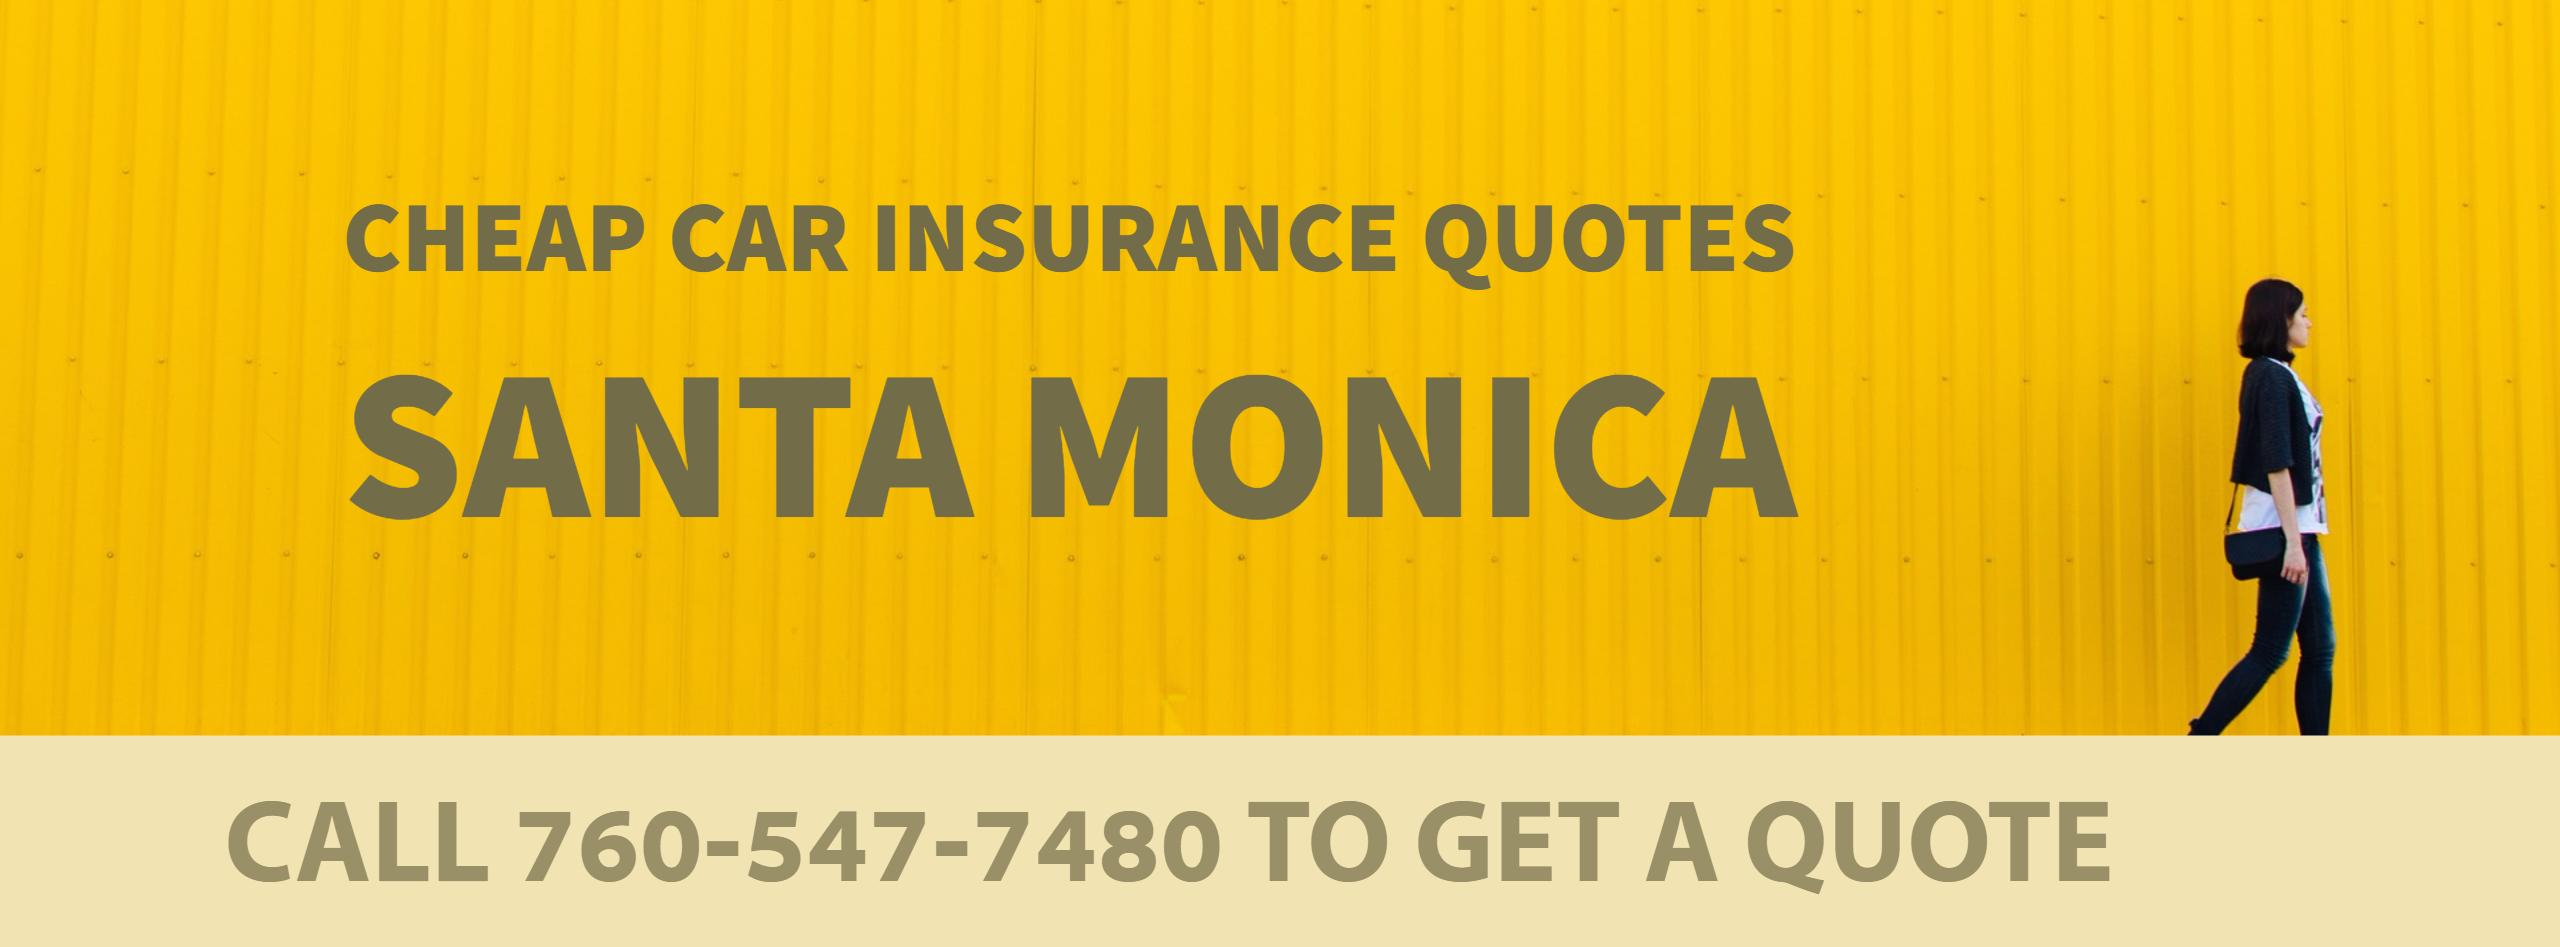 CHEAP CAR INSURANCE QUOTES Queens, NY